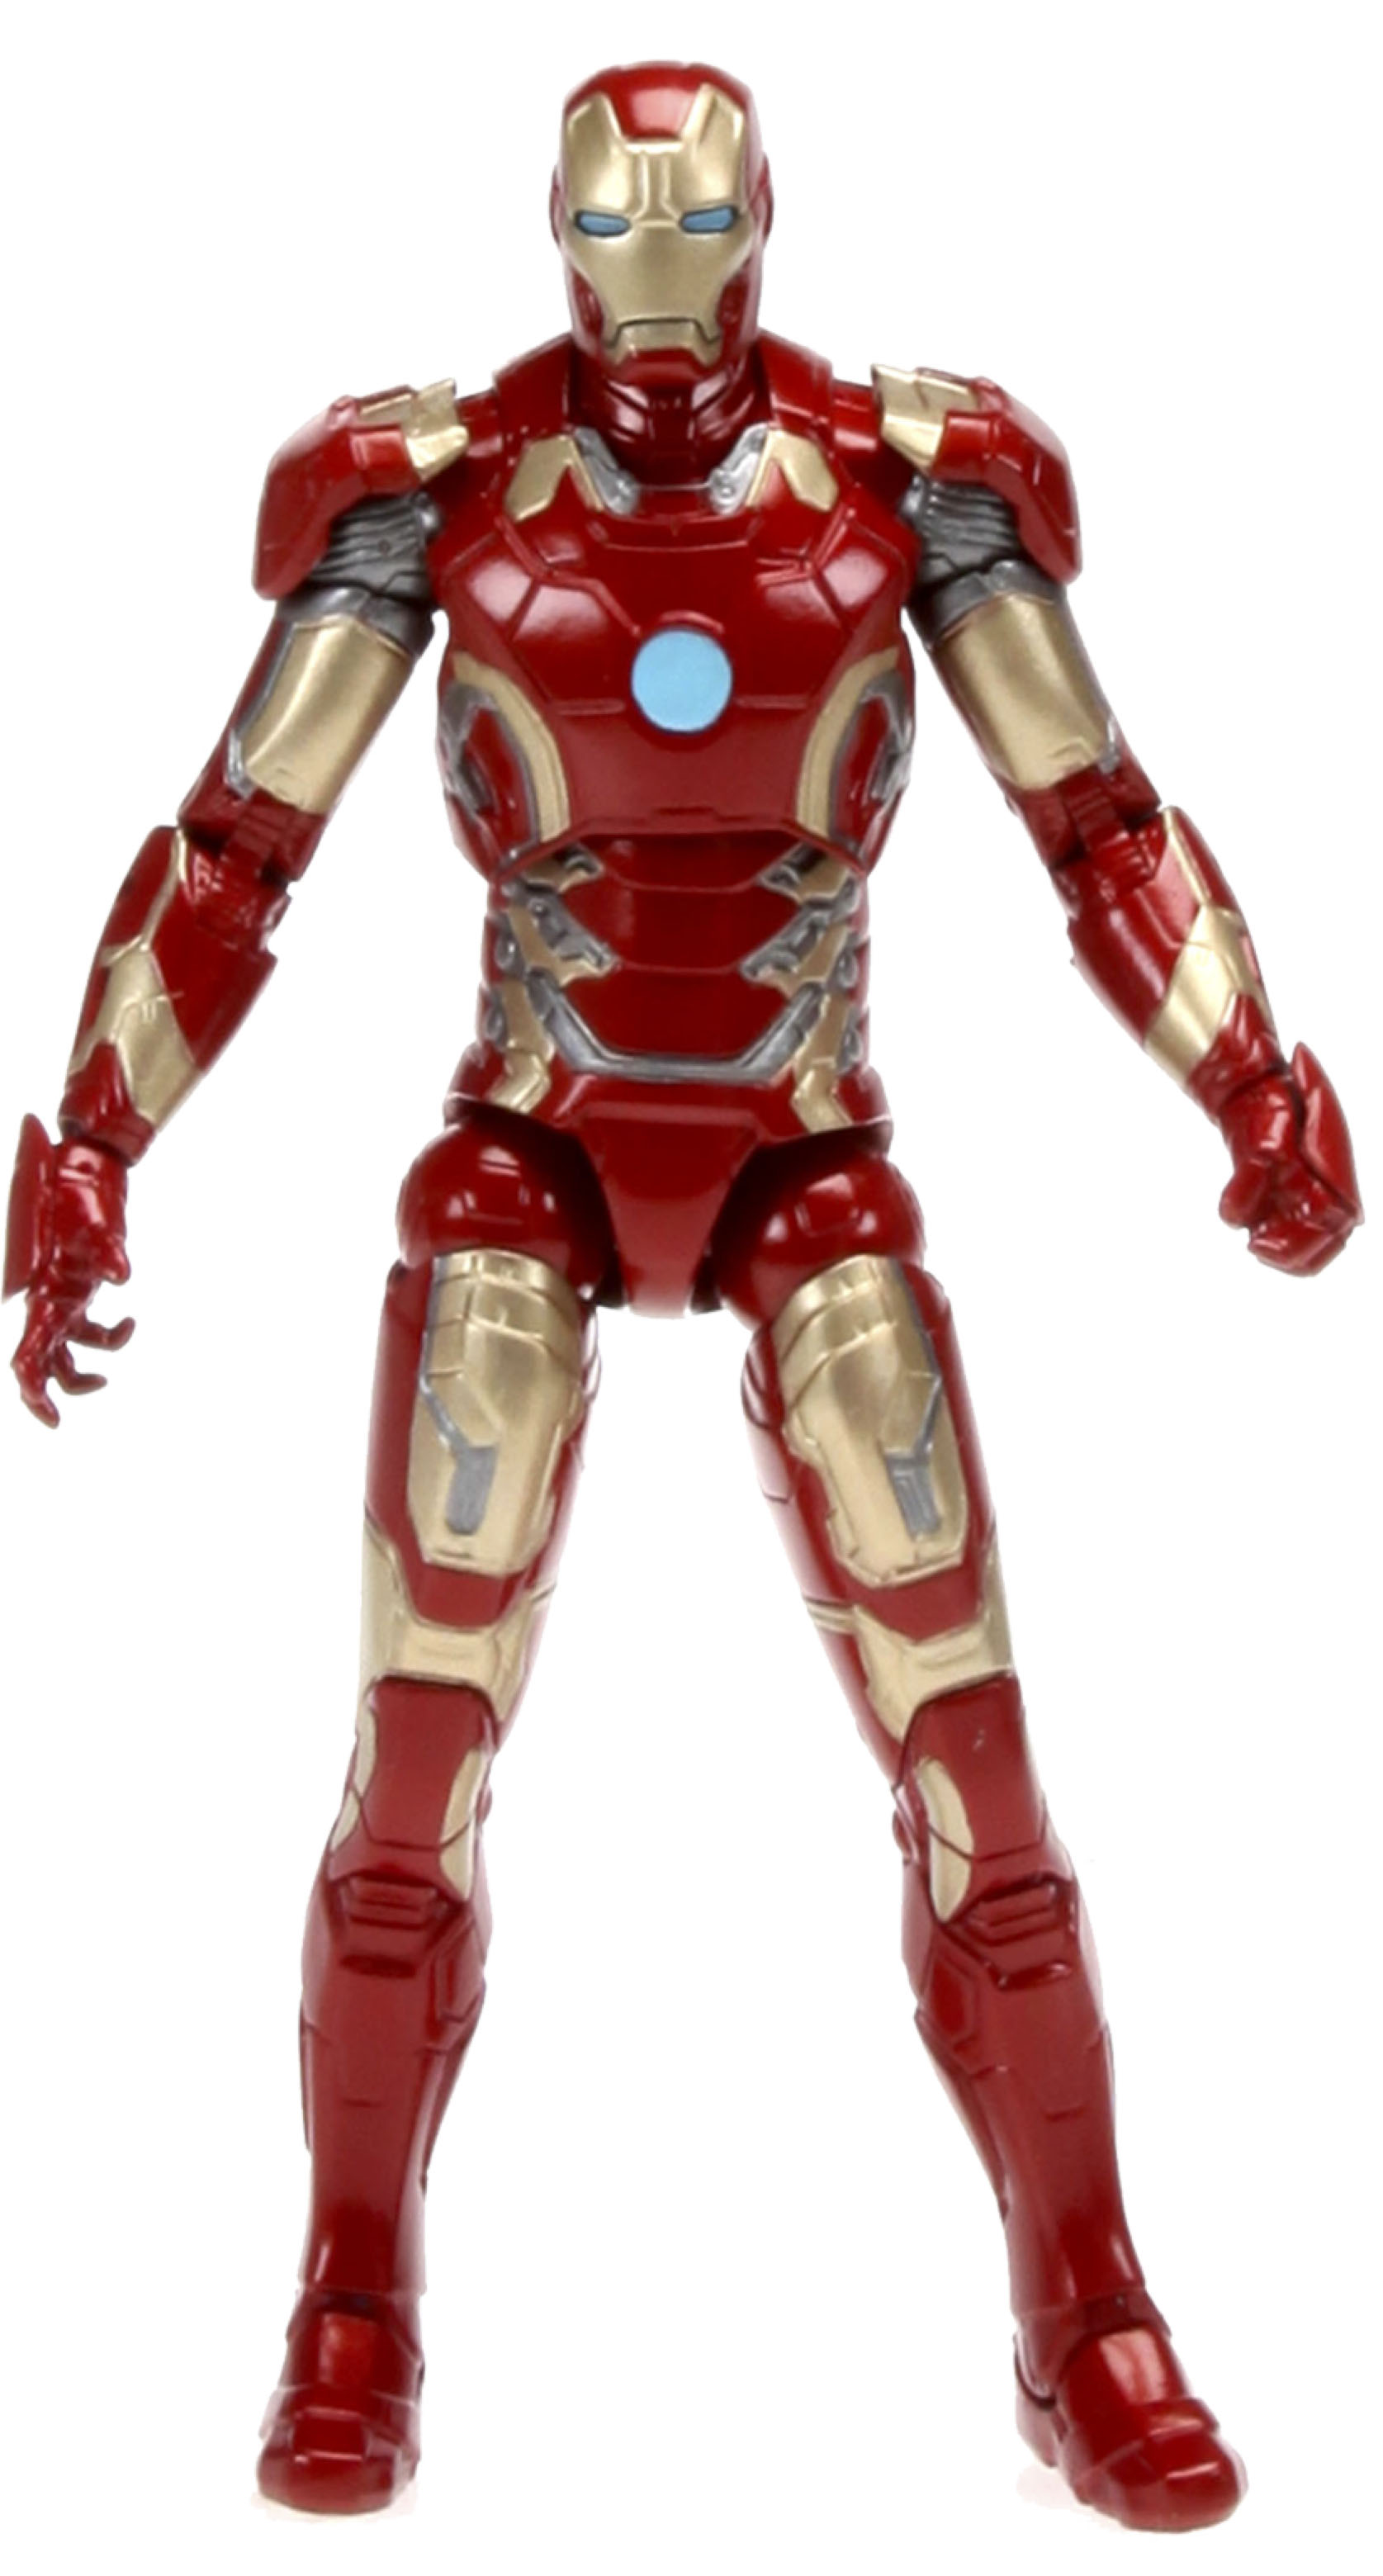 Marvel Legends Official Photos From Toy Fair 2015